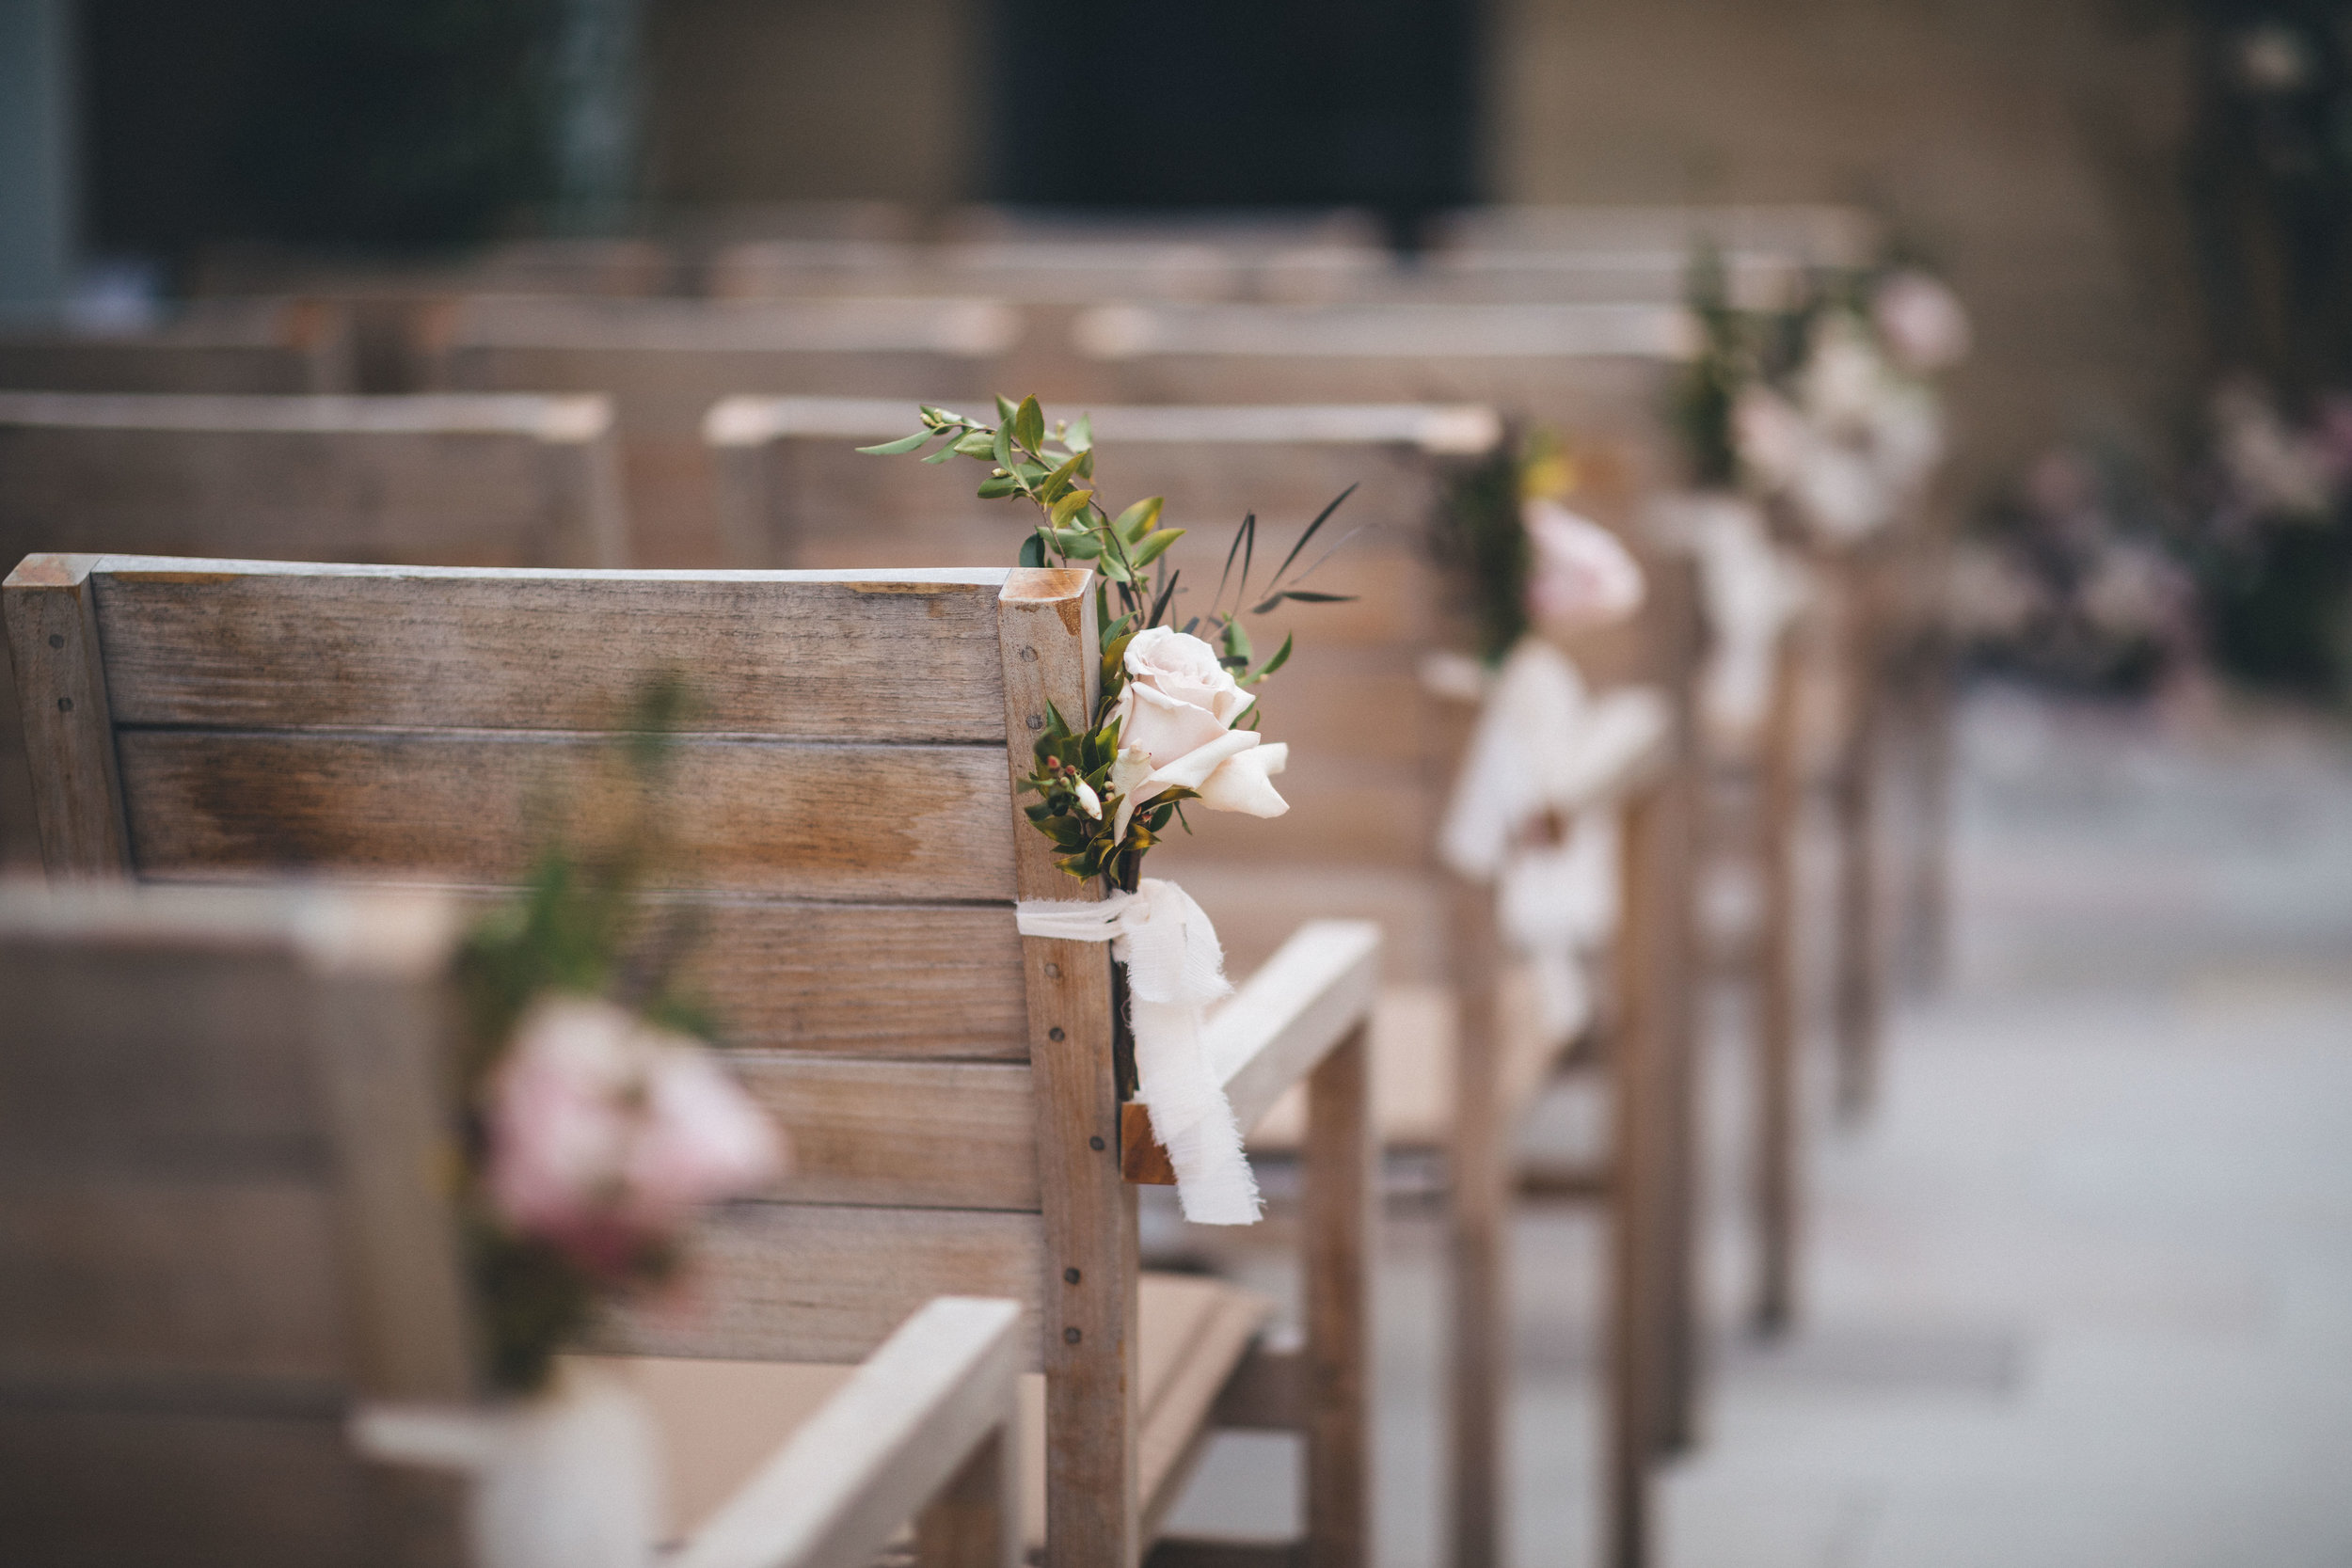 Chair / aisle decor - Add a touch of something pretty to the aisle edge, whether that be the chairs, church pews or the aisle floor area. Rose petals, floor floral arrangements and/or floral chair ties provide a nice touch!